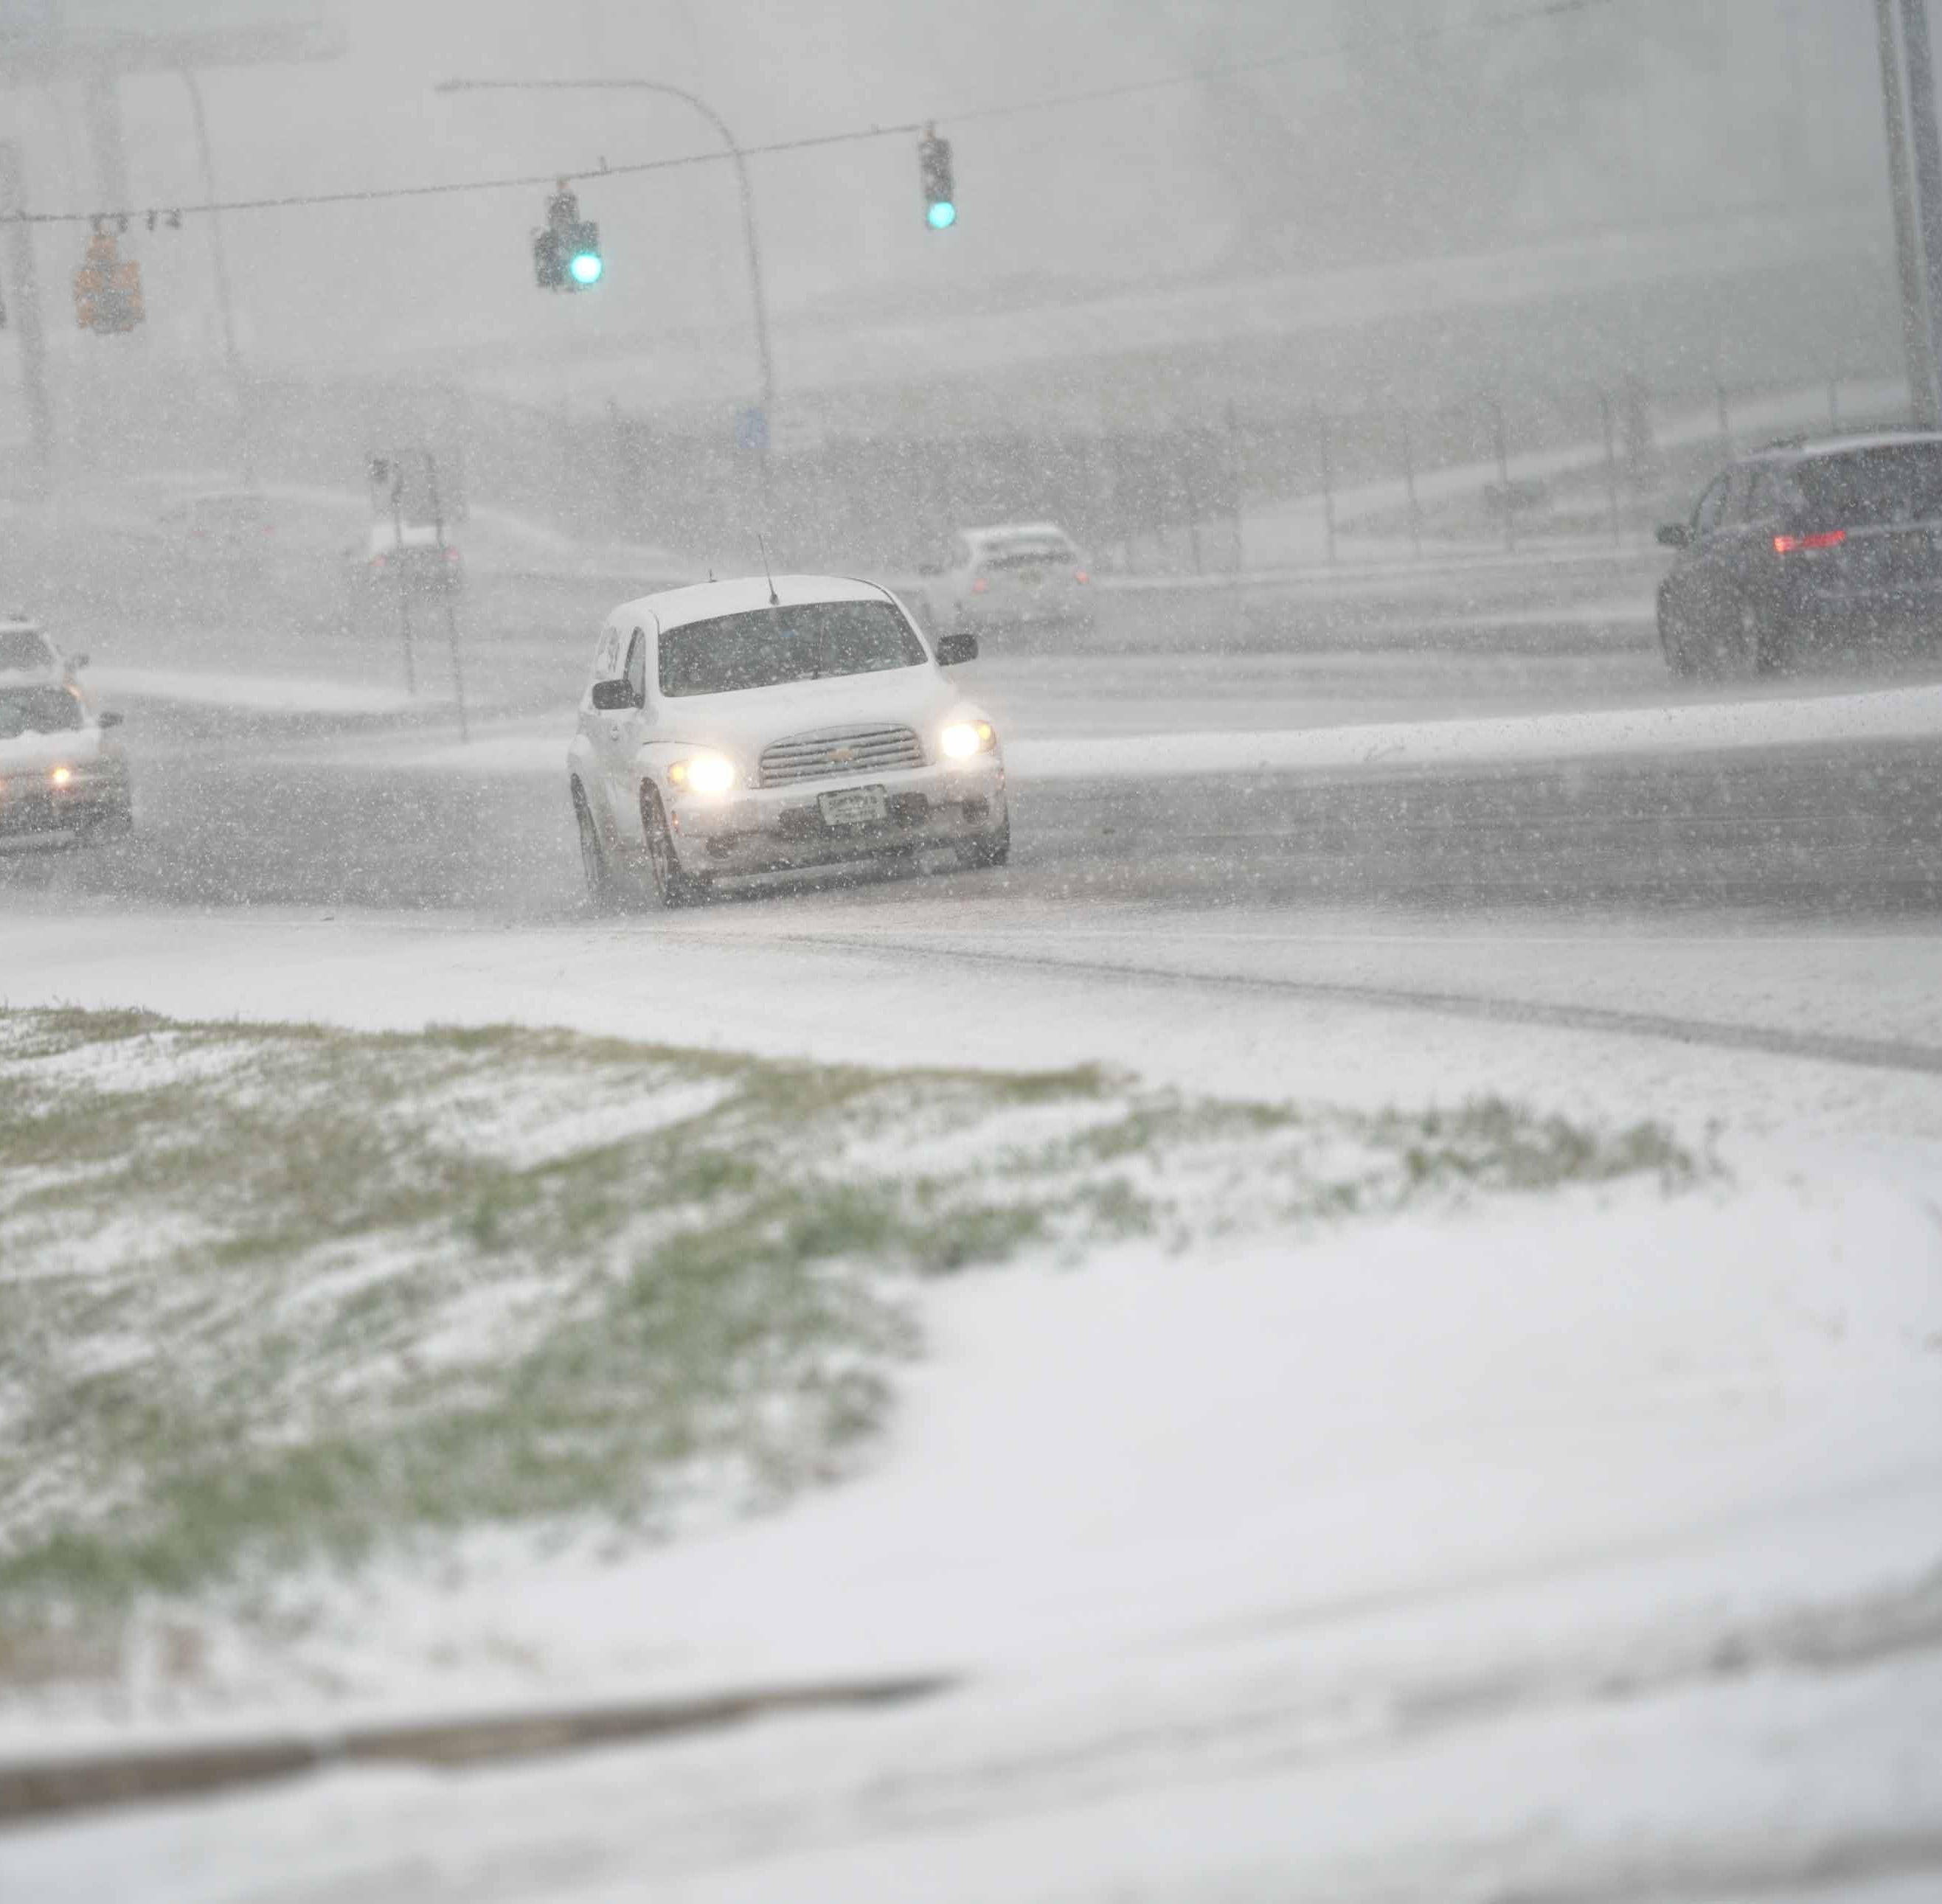 Snow falling in Delaware; expect rain and wind in afternoon